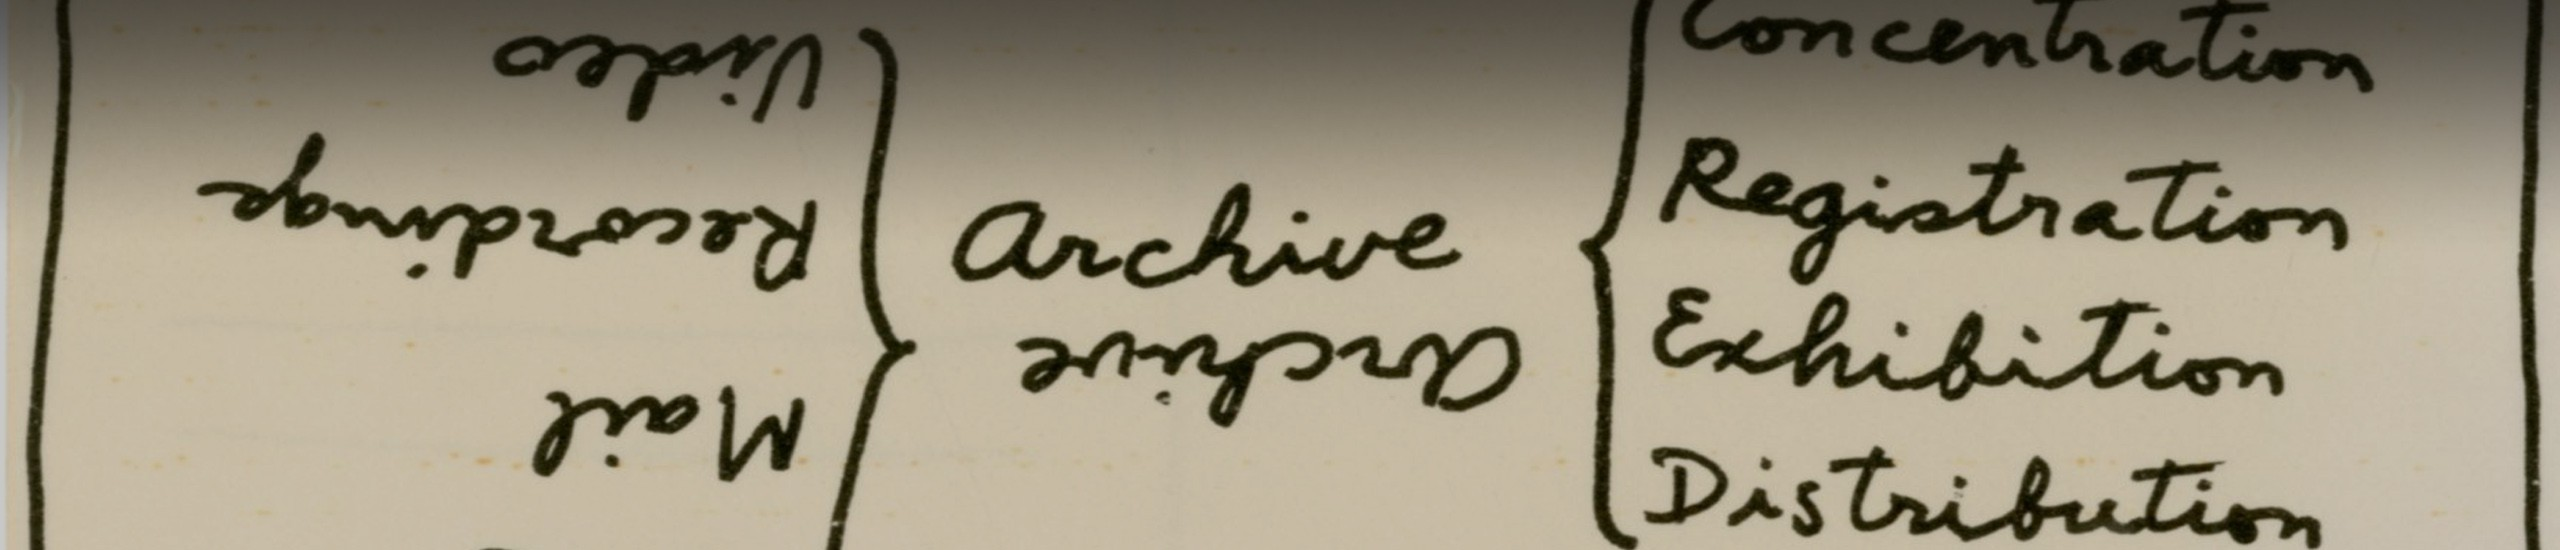 Ulises Carrión: <i>Archive</i>, s. a. [¿1979?]